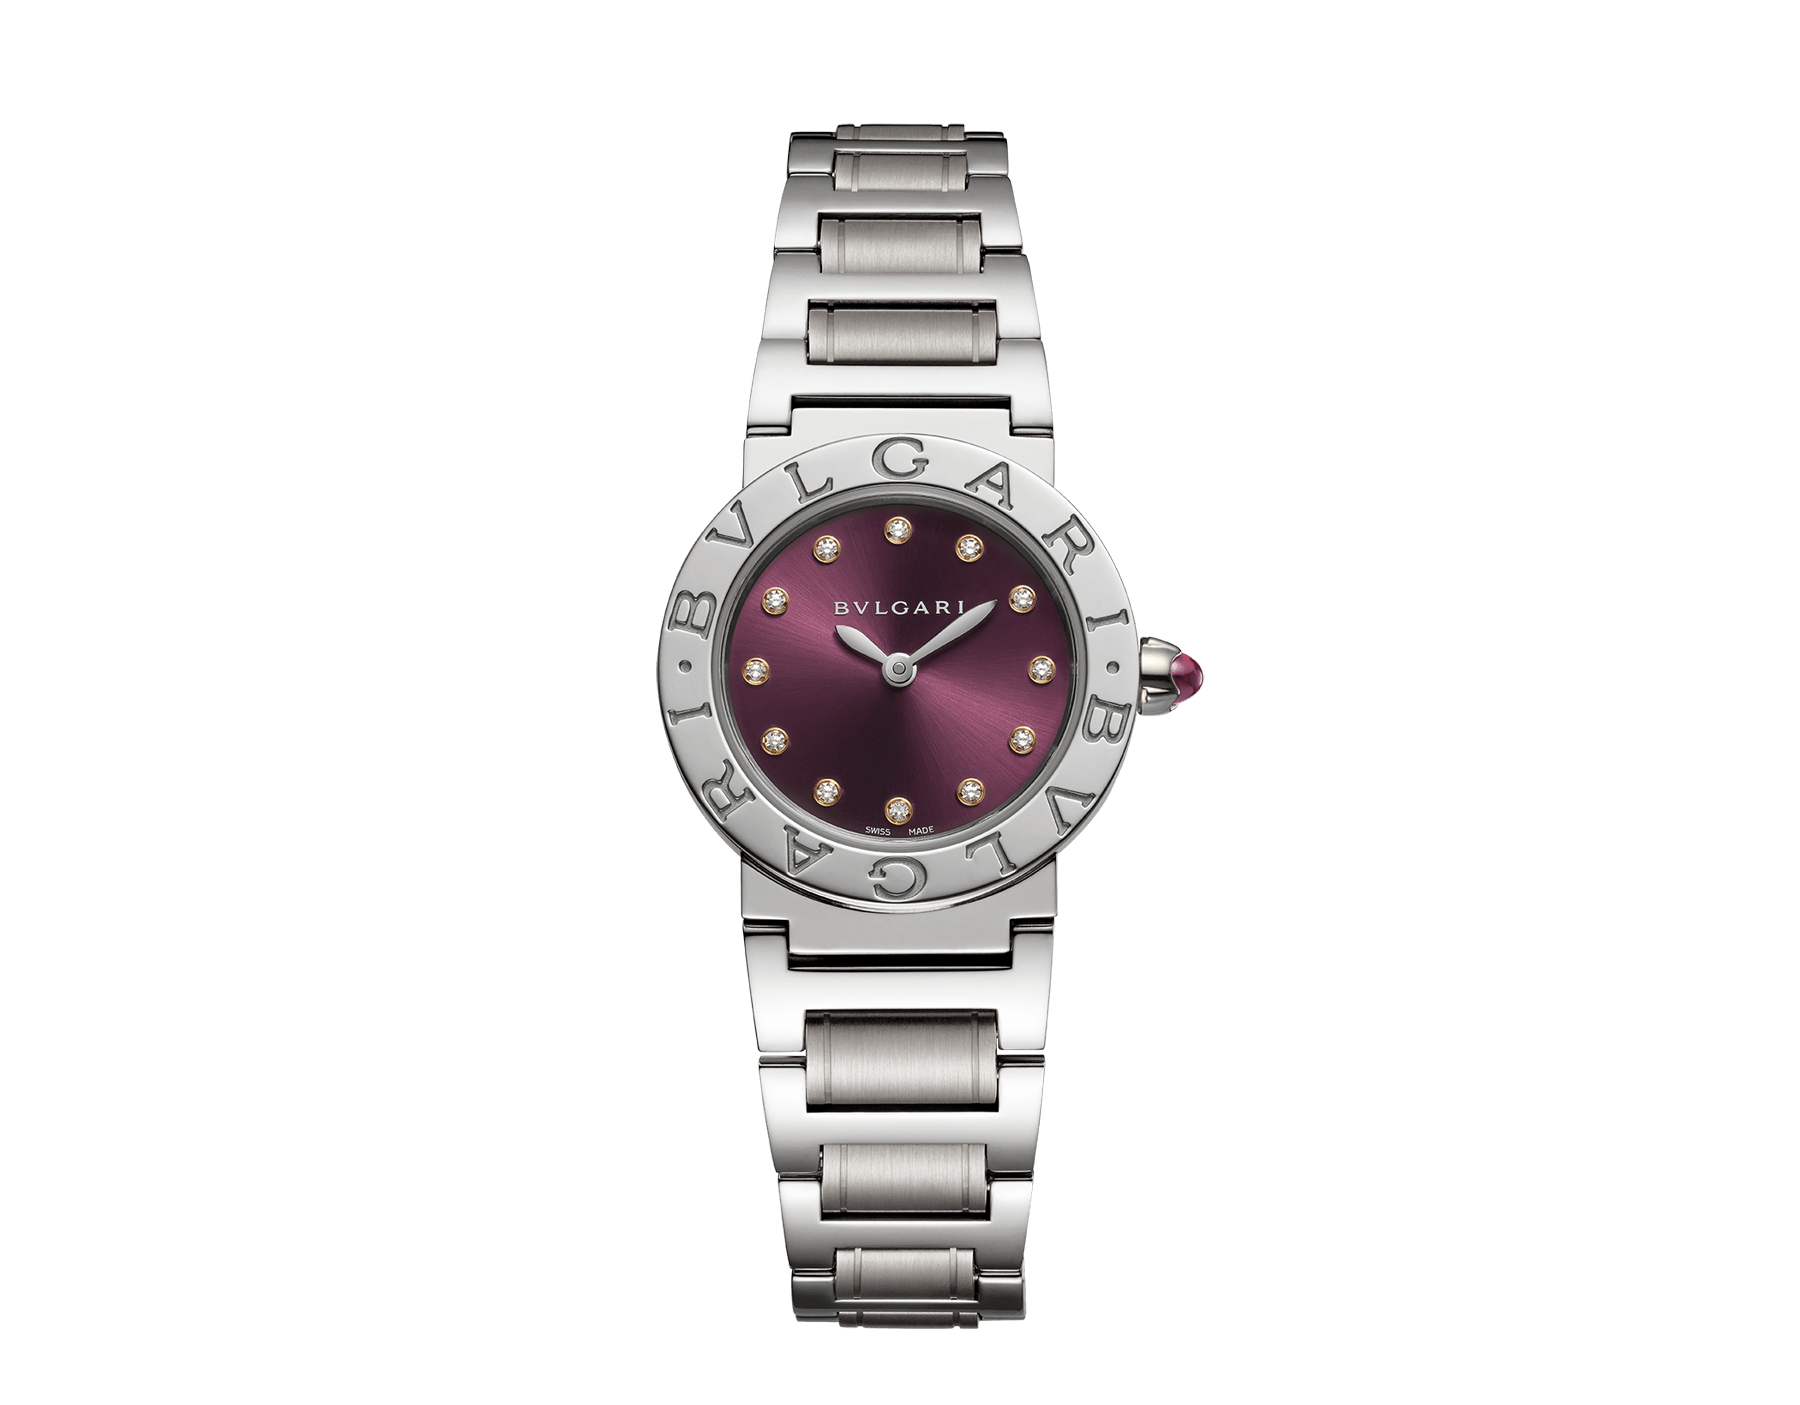 BVLGARI BVLGARI watch in stainless steel case and bracelet, with purple satiné soleil lacquered dial and diamond indexes 102606 image 1